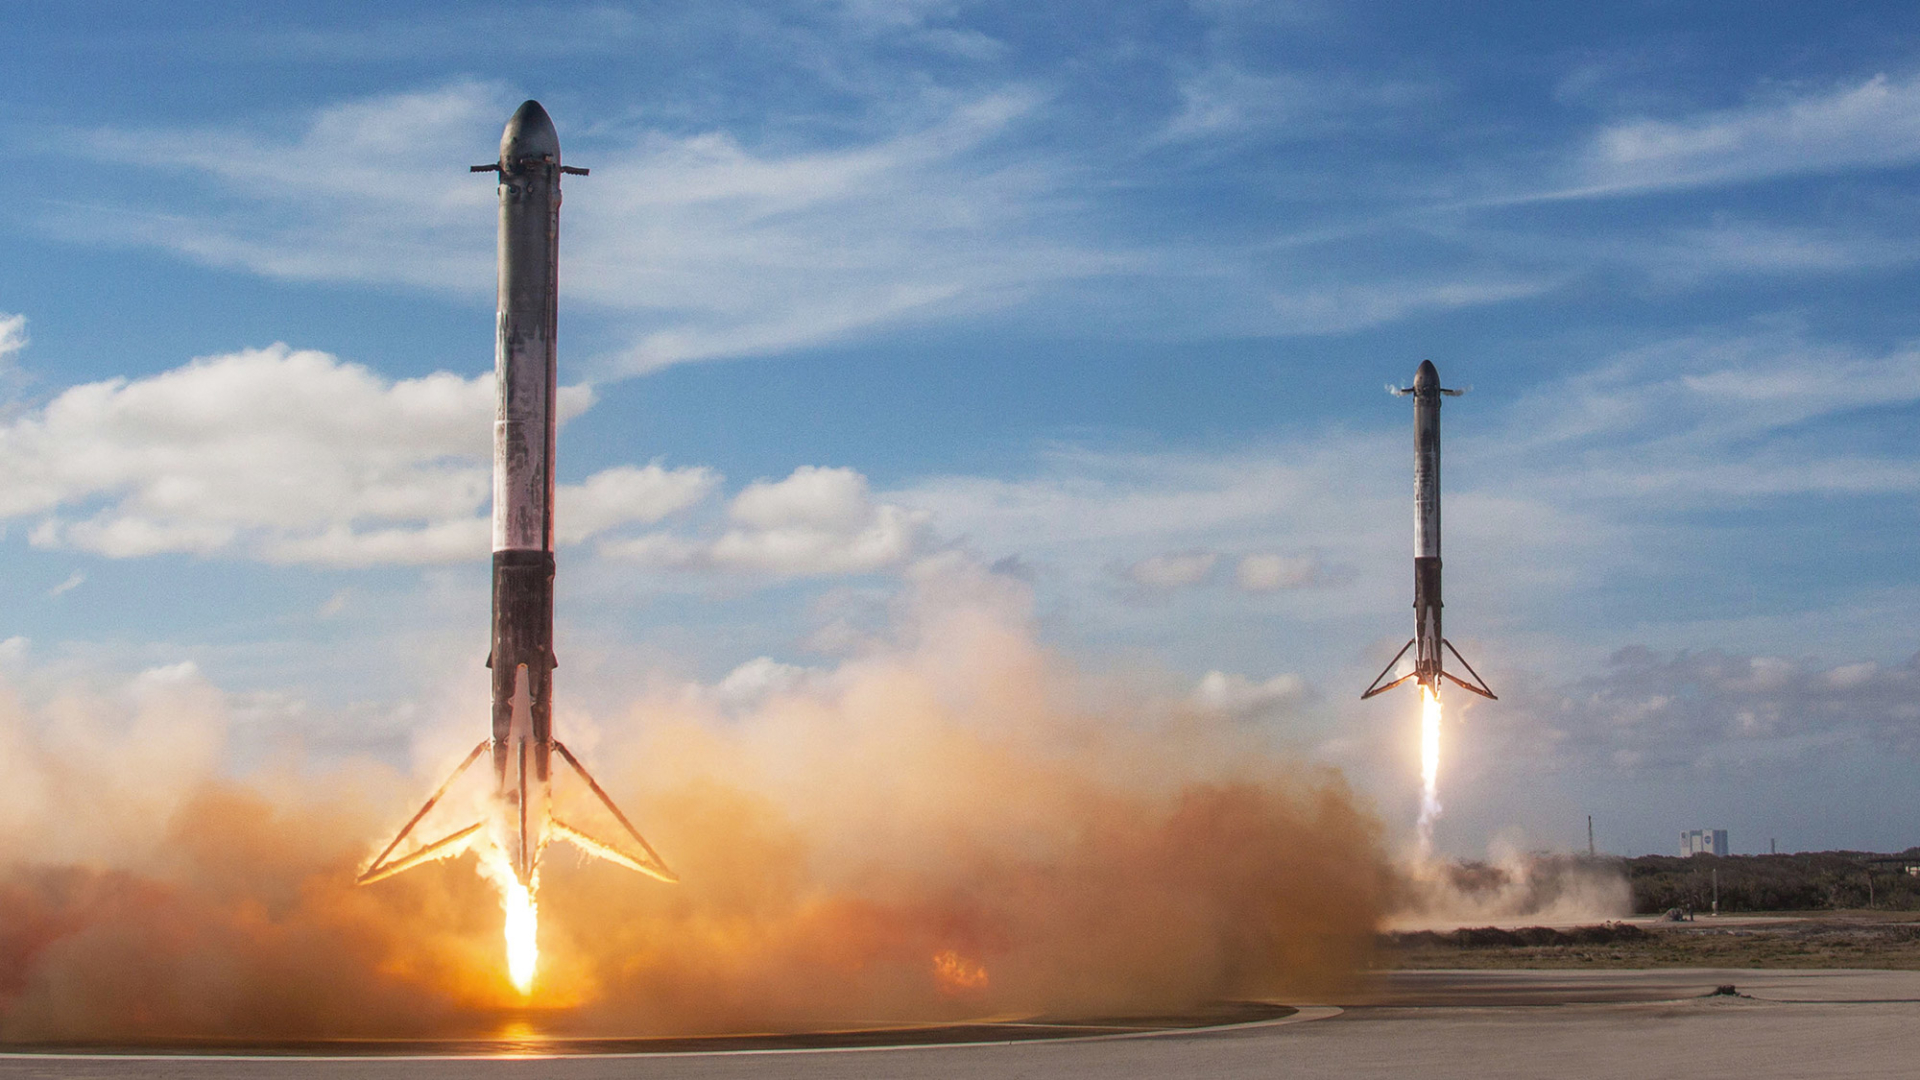 Wallpaper Of Technology Spacex Rocket Background Hd Image